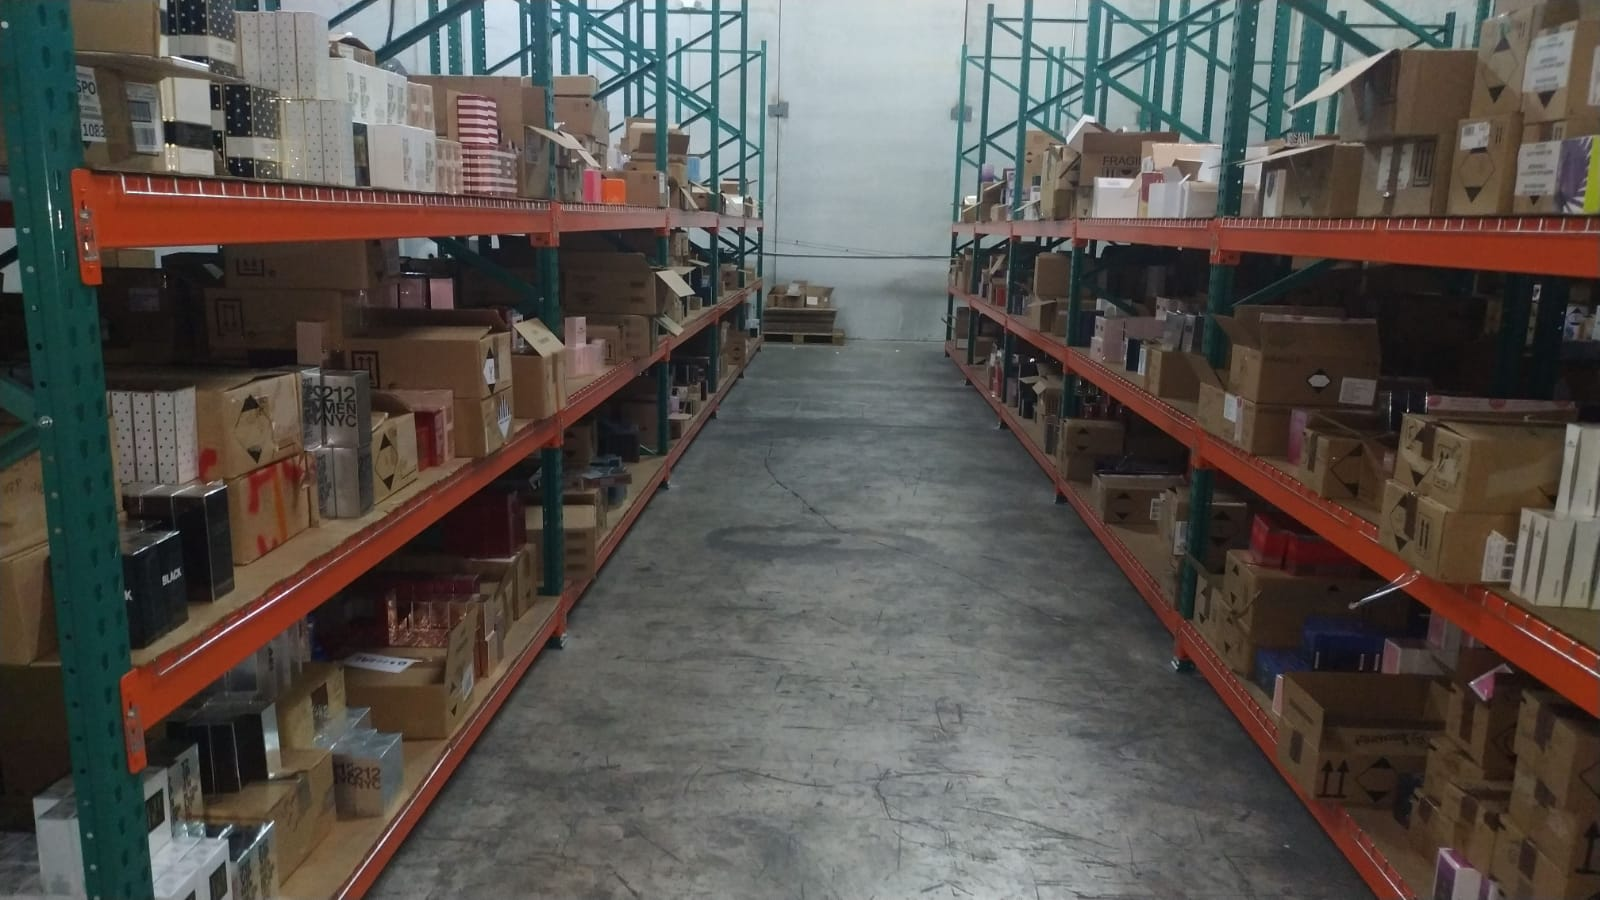 warehouse-image-10.jpg